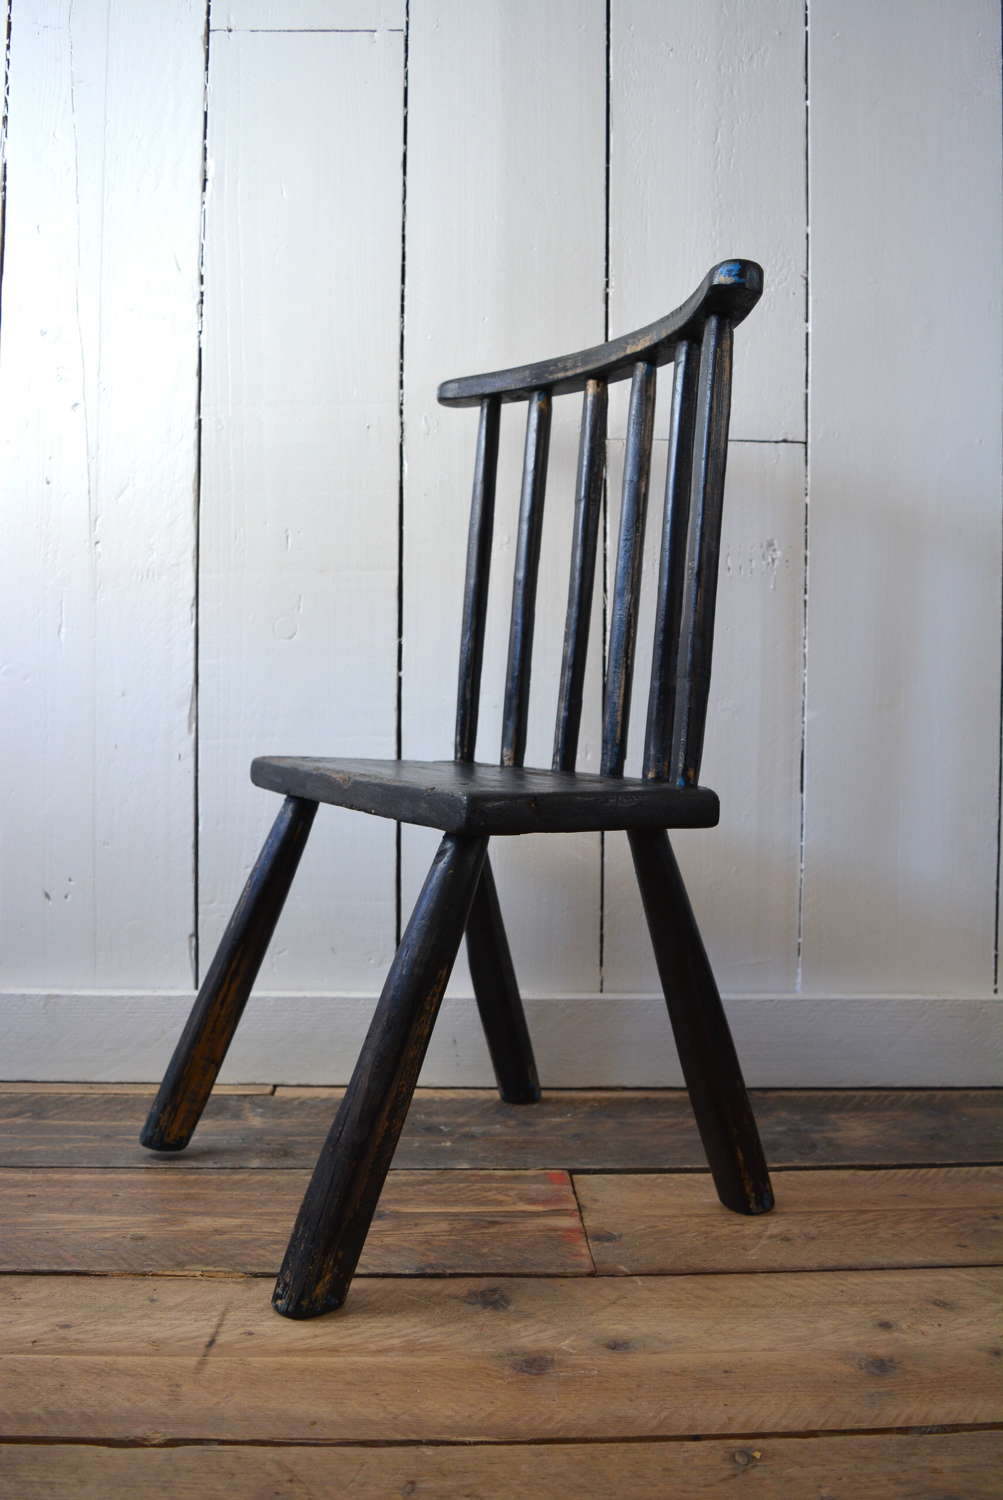 EARLY 19TH CENTURY ANTRIM CHAIR